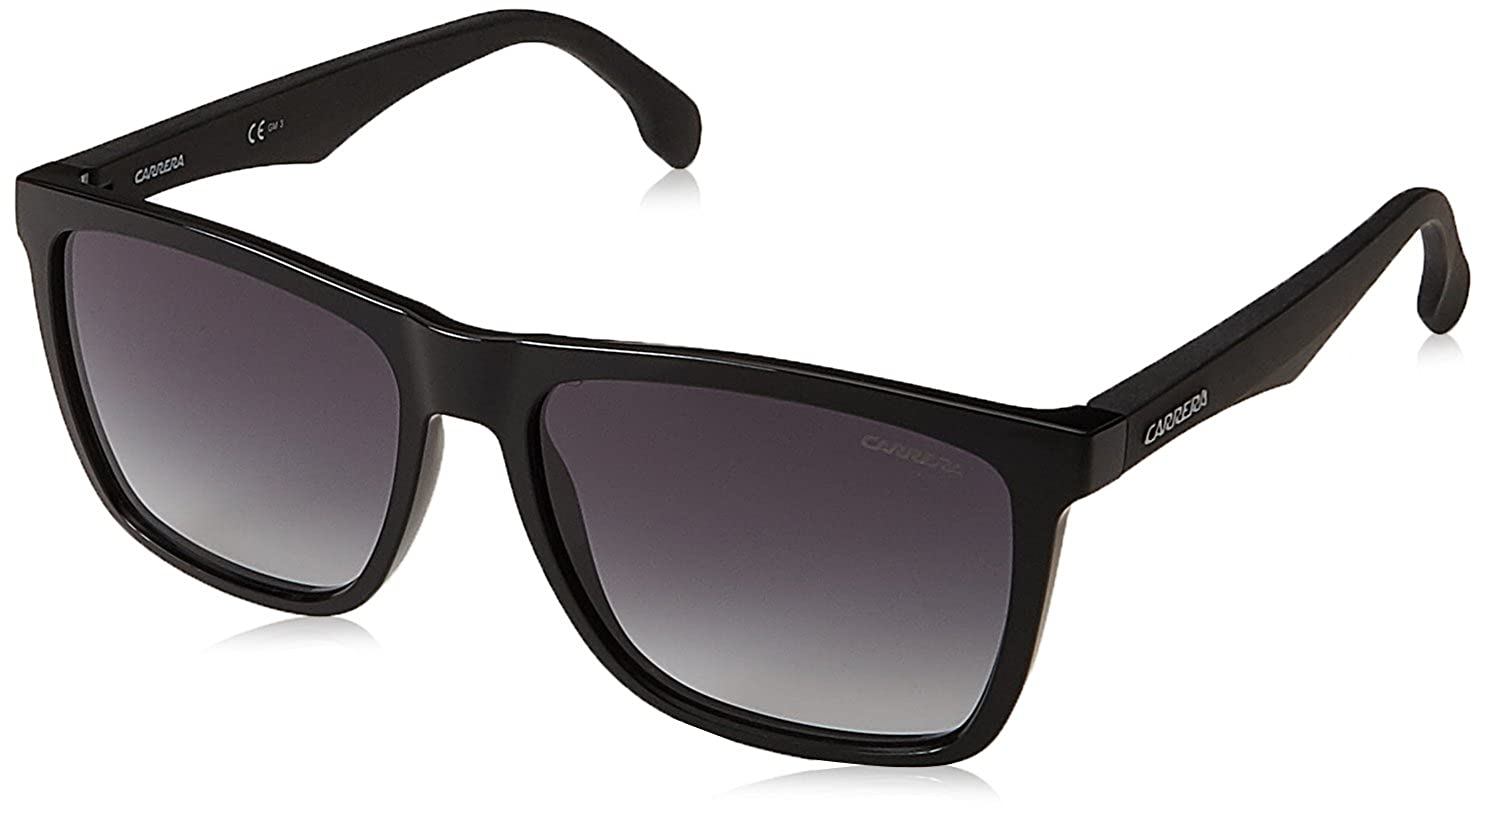 Carrera Men's Ca5041s Rectangular Sunglasses, Black/Dark Gray Gradient, 56 mm CARRERA5041/S9O_807-56